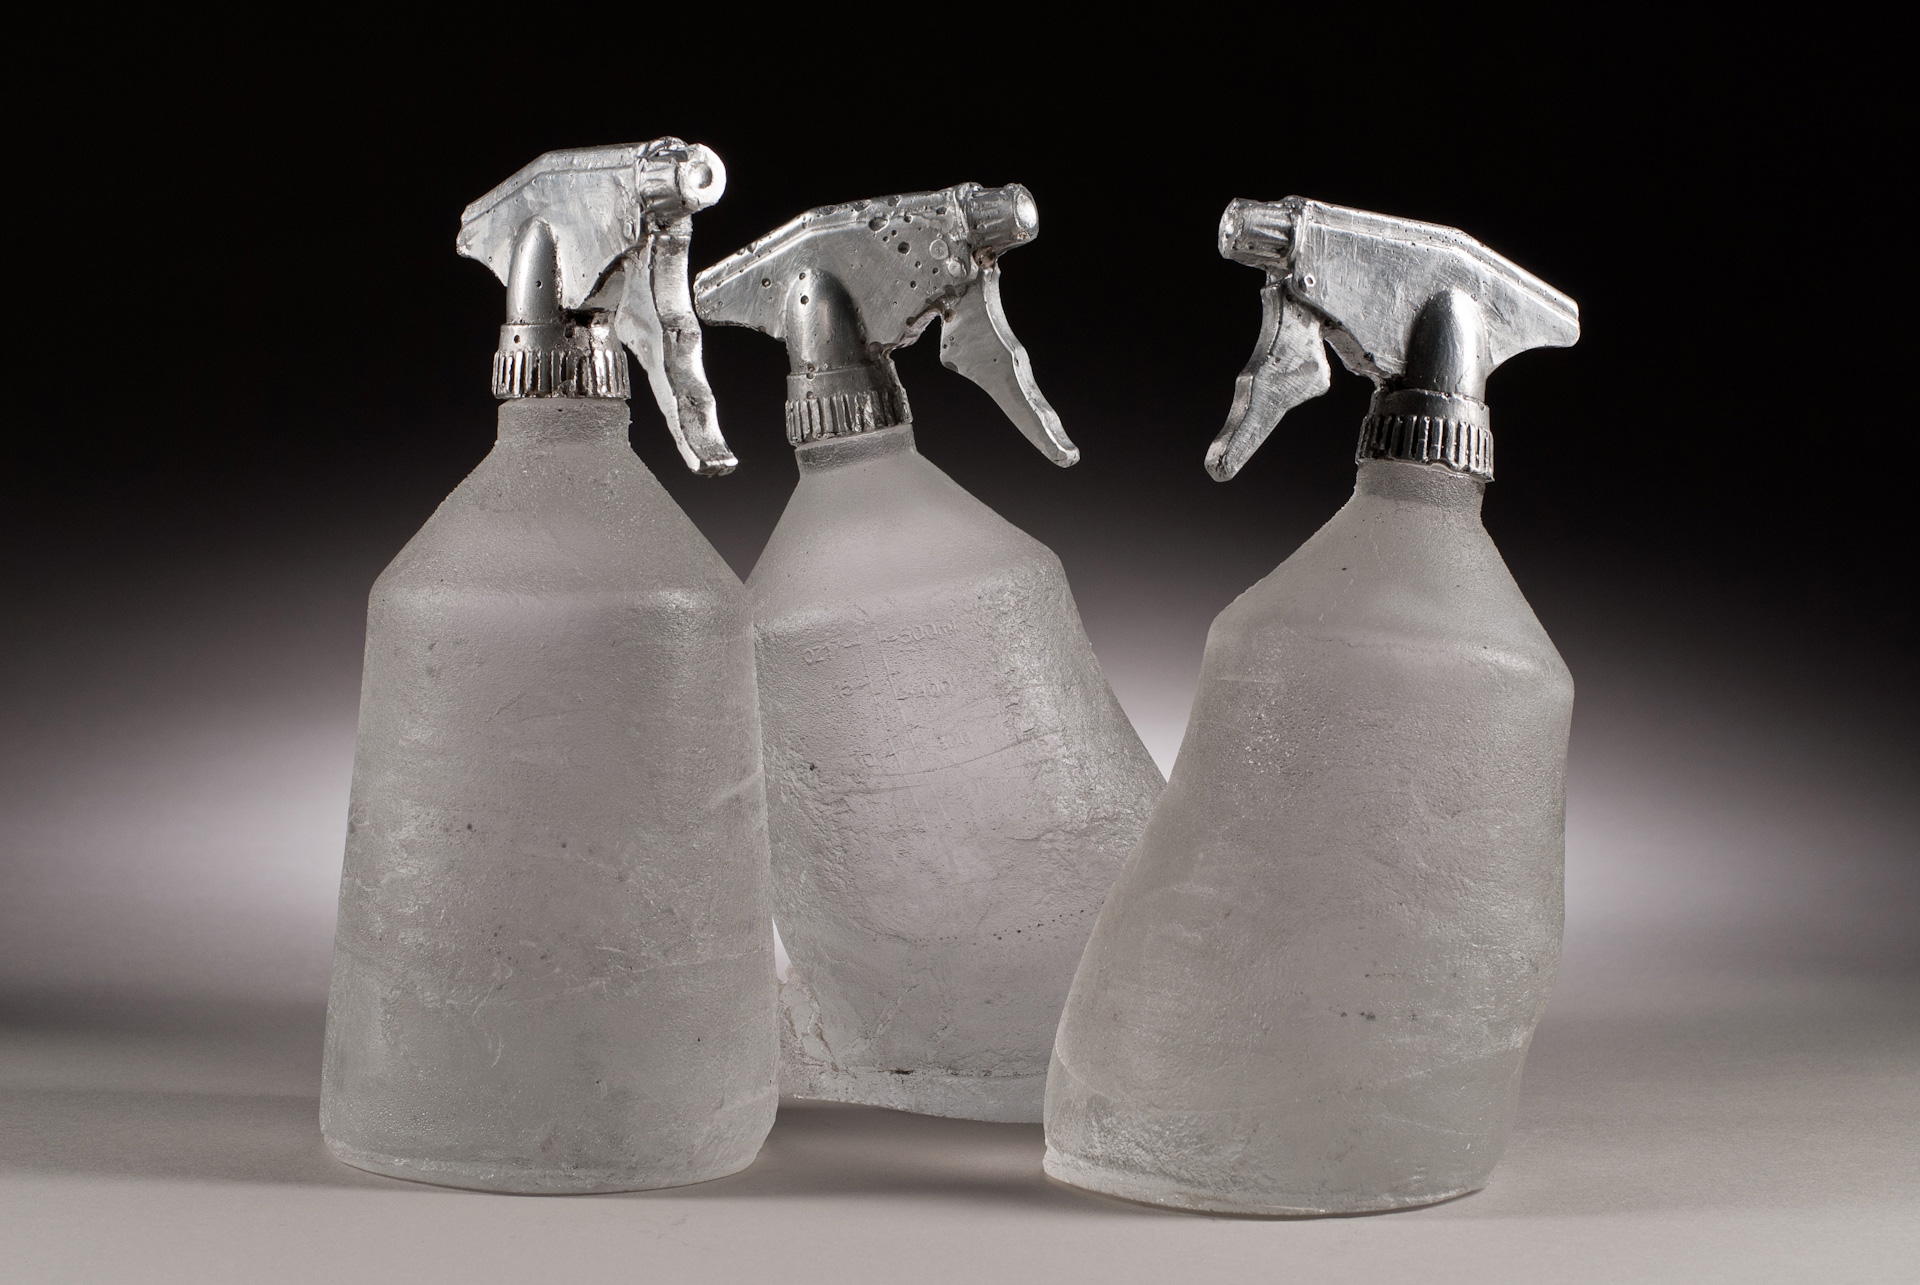 Three cast glass bottles , titled Spray Morped, with printed labels and cast aluminum sprayer nozzles.